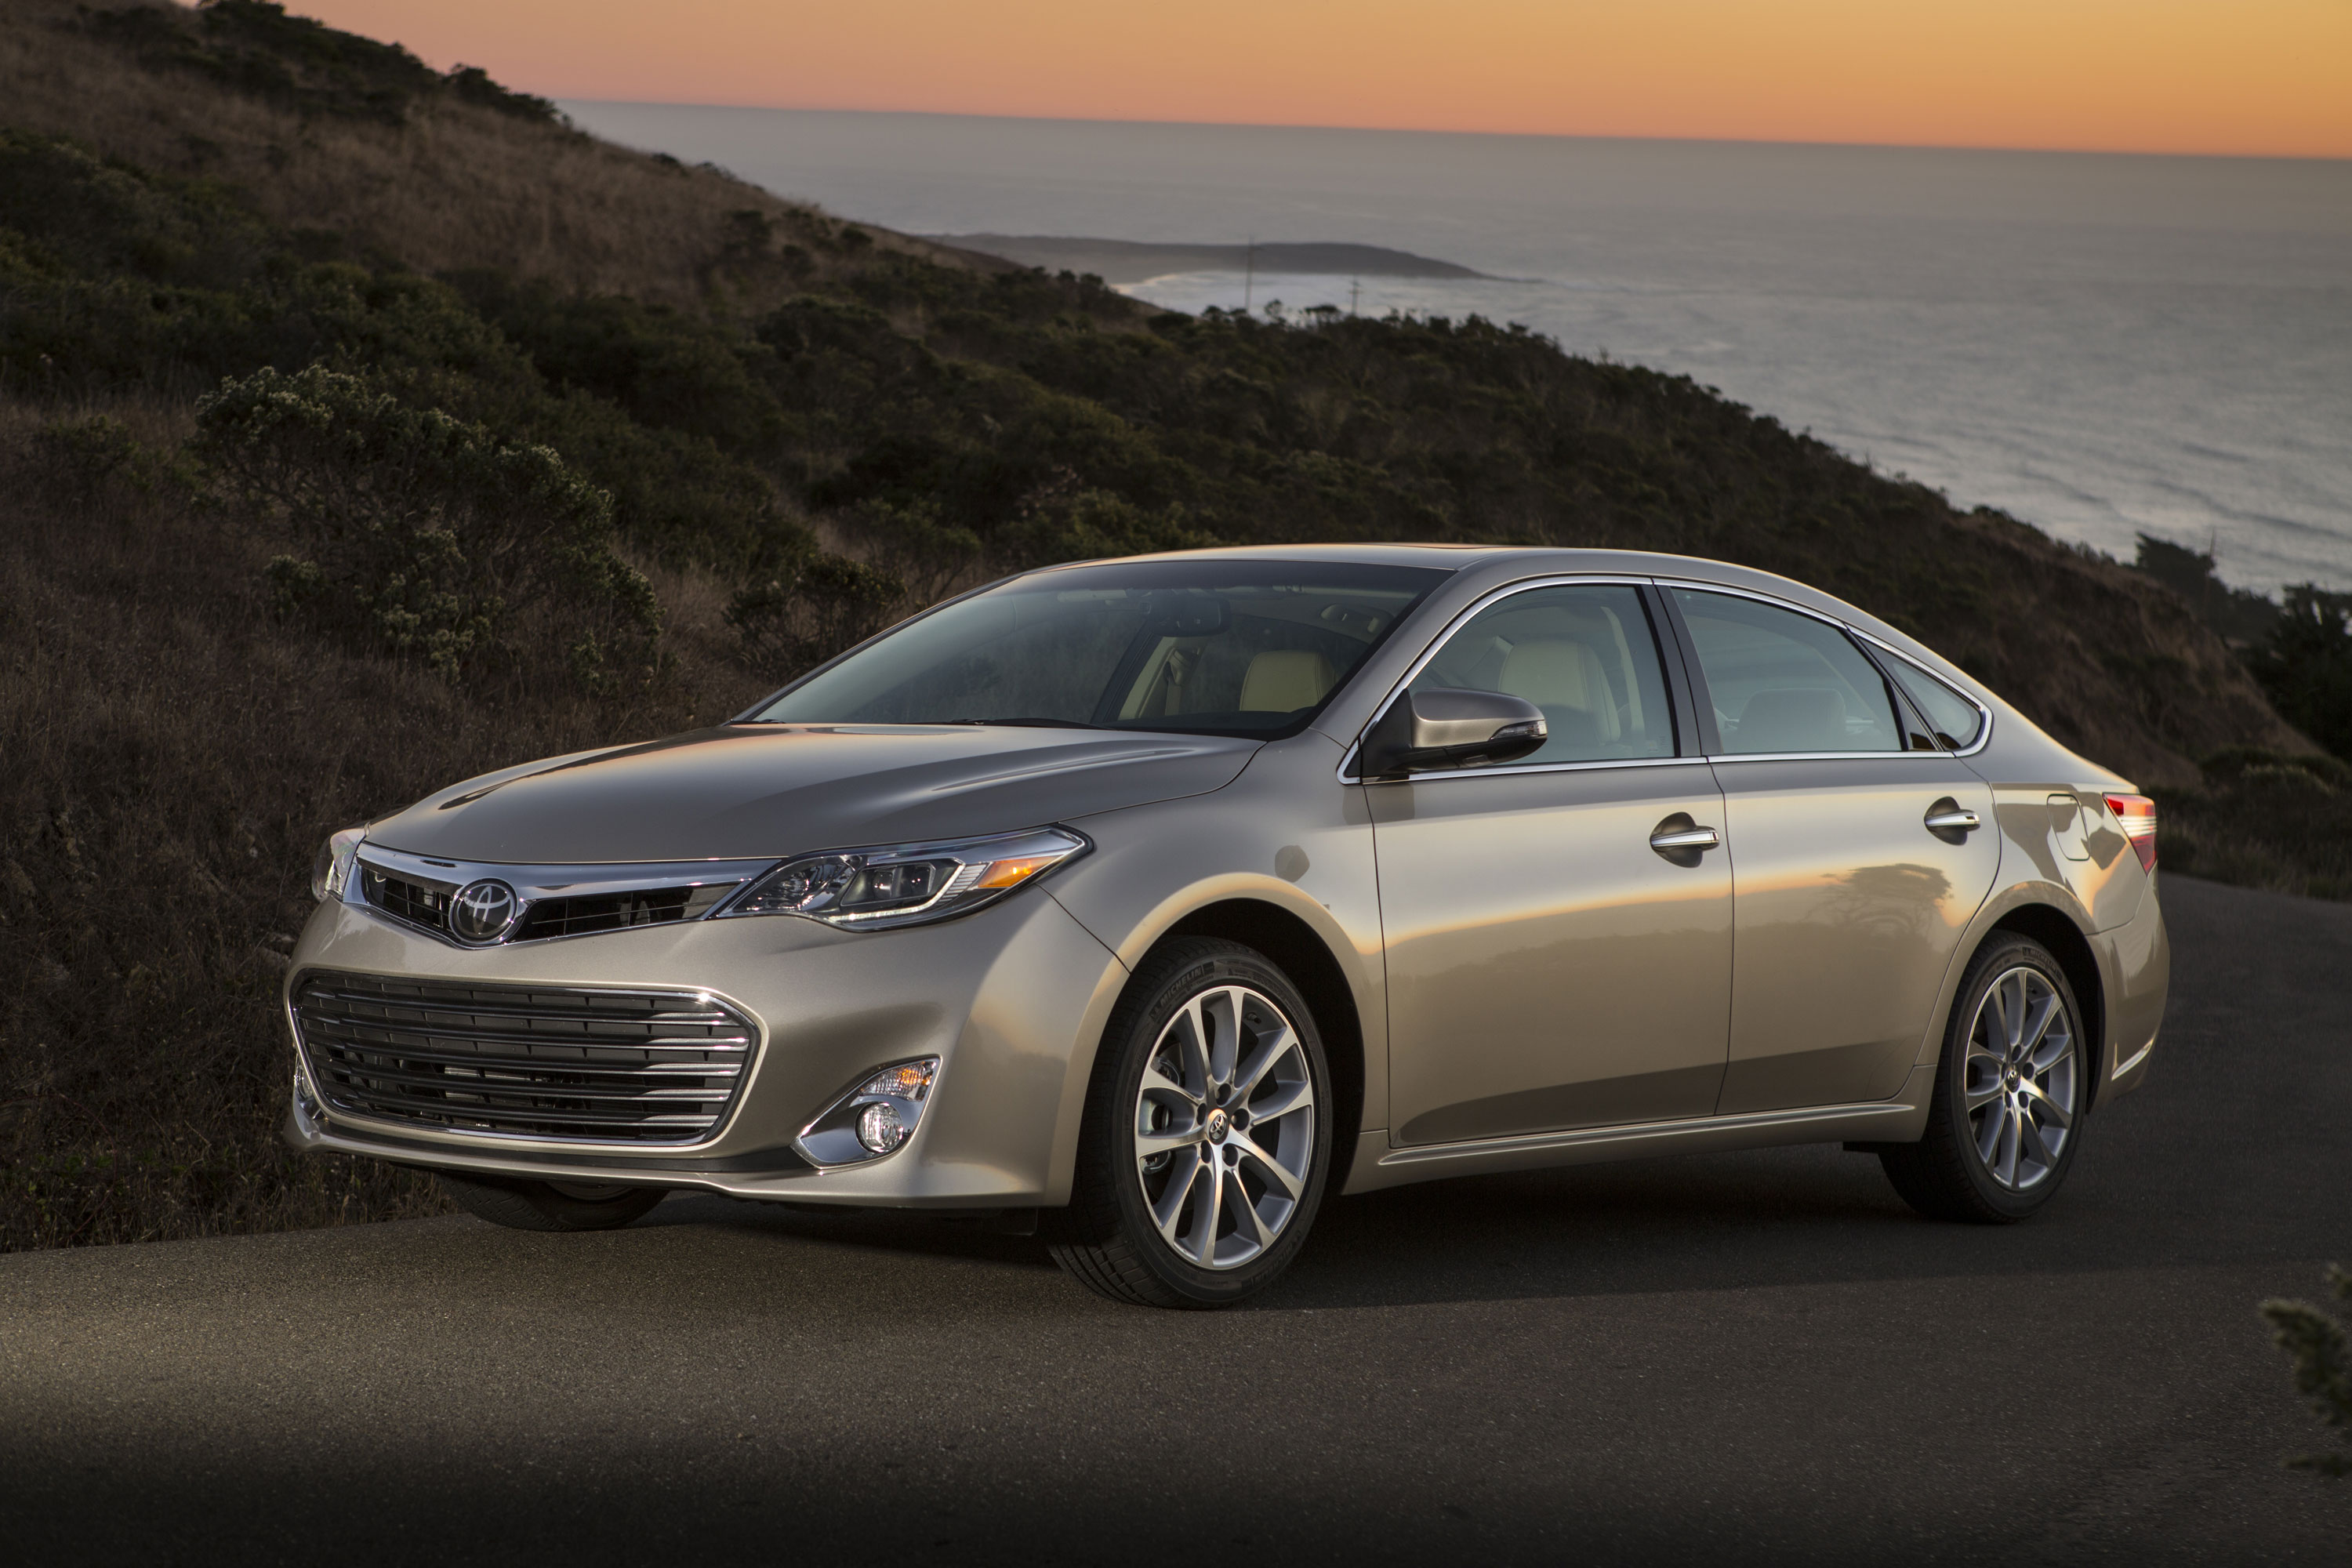 2014 Toyota Avalon Photos, Informations, Articles - BestCarMag.com